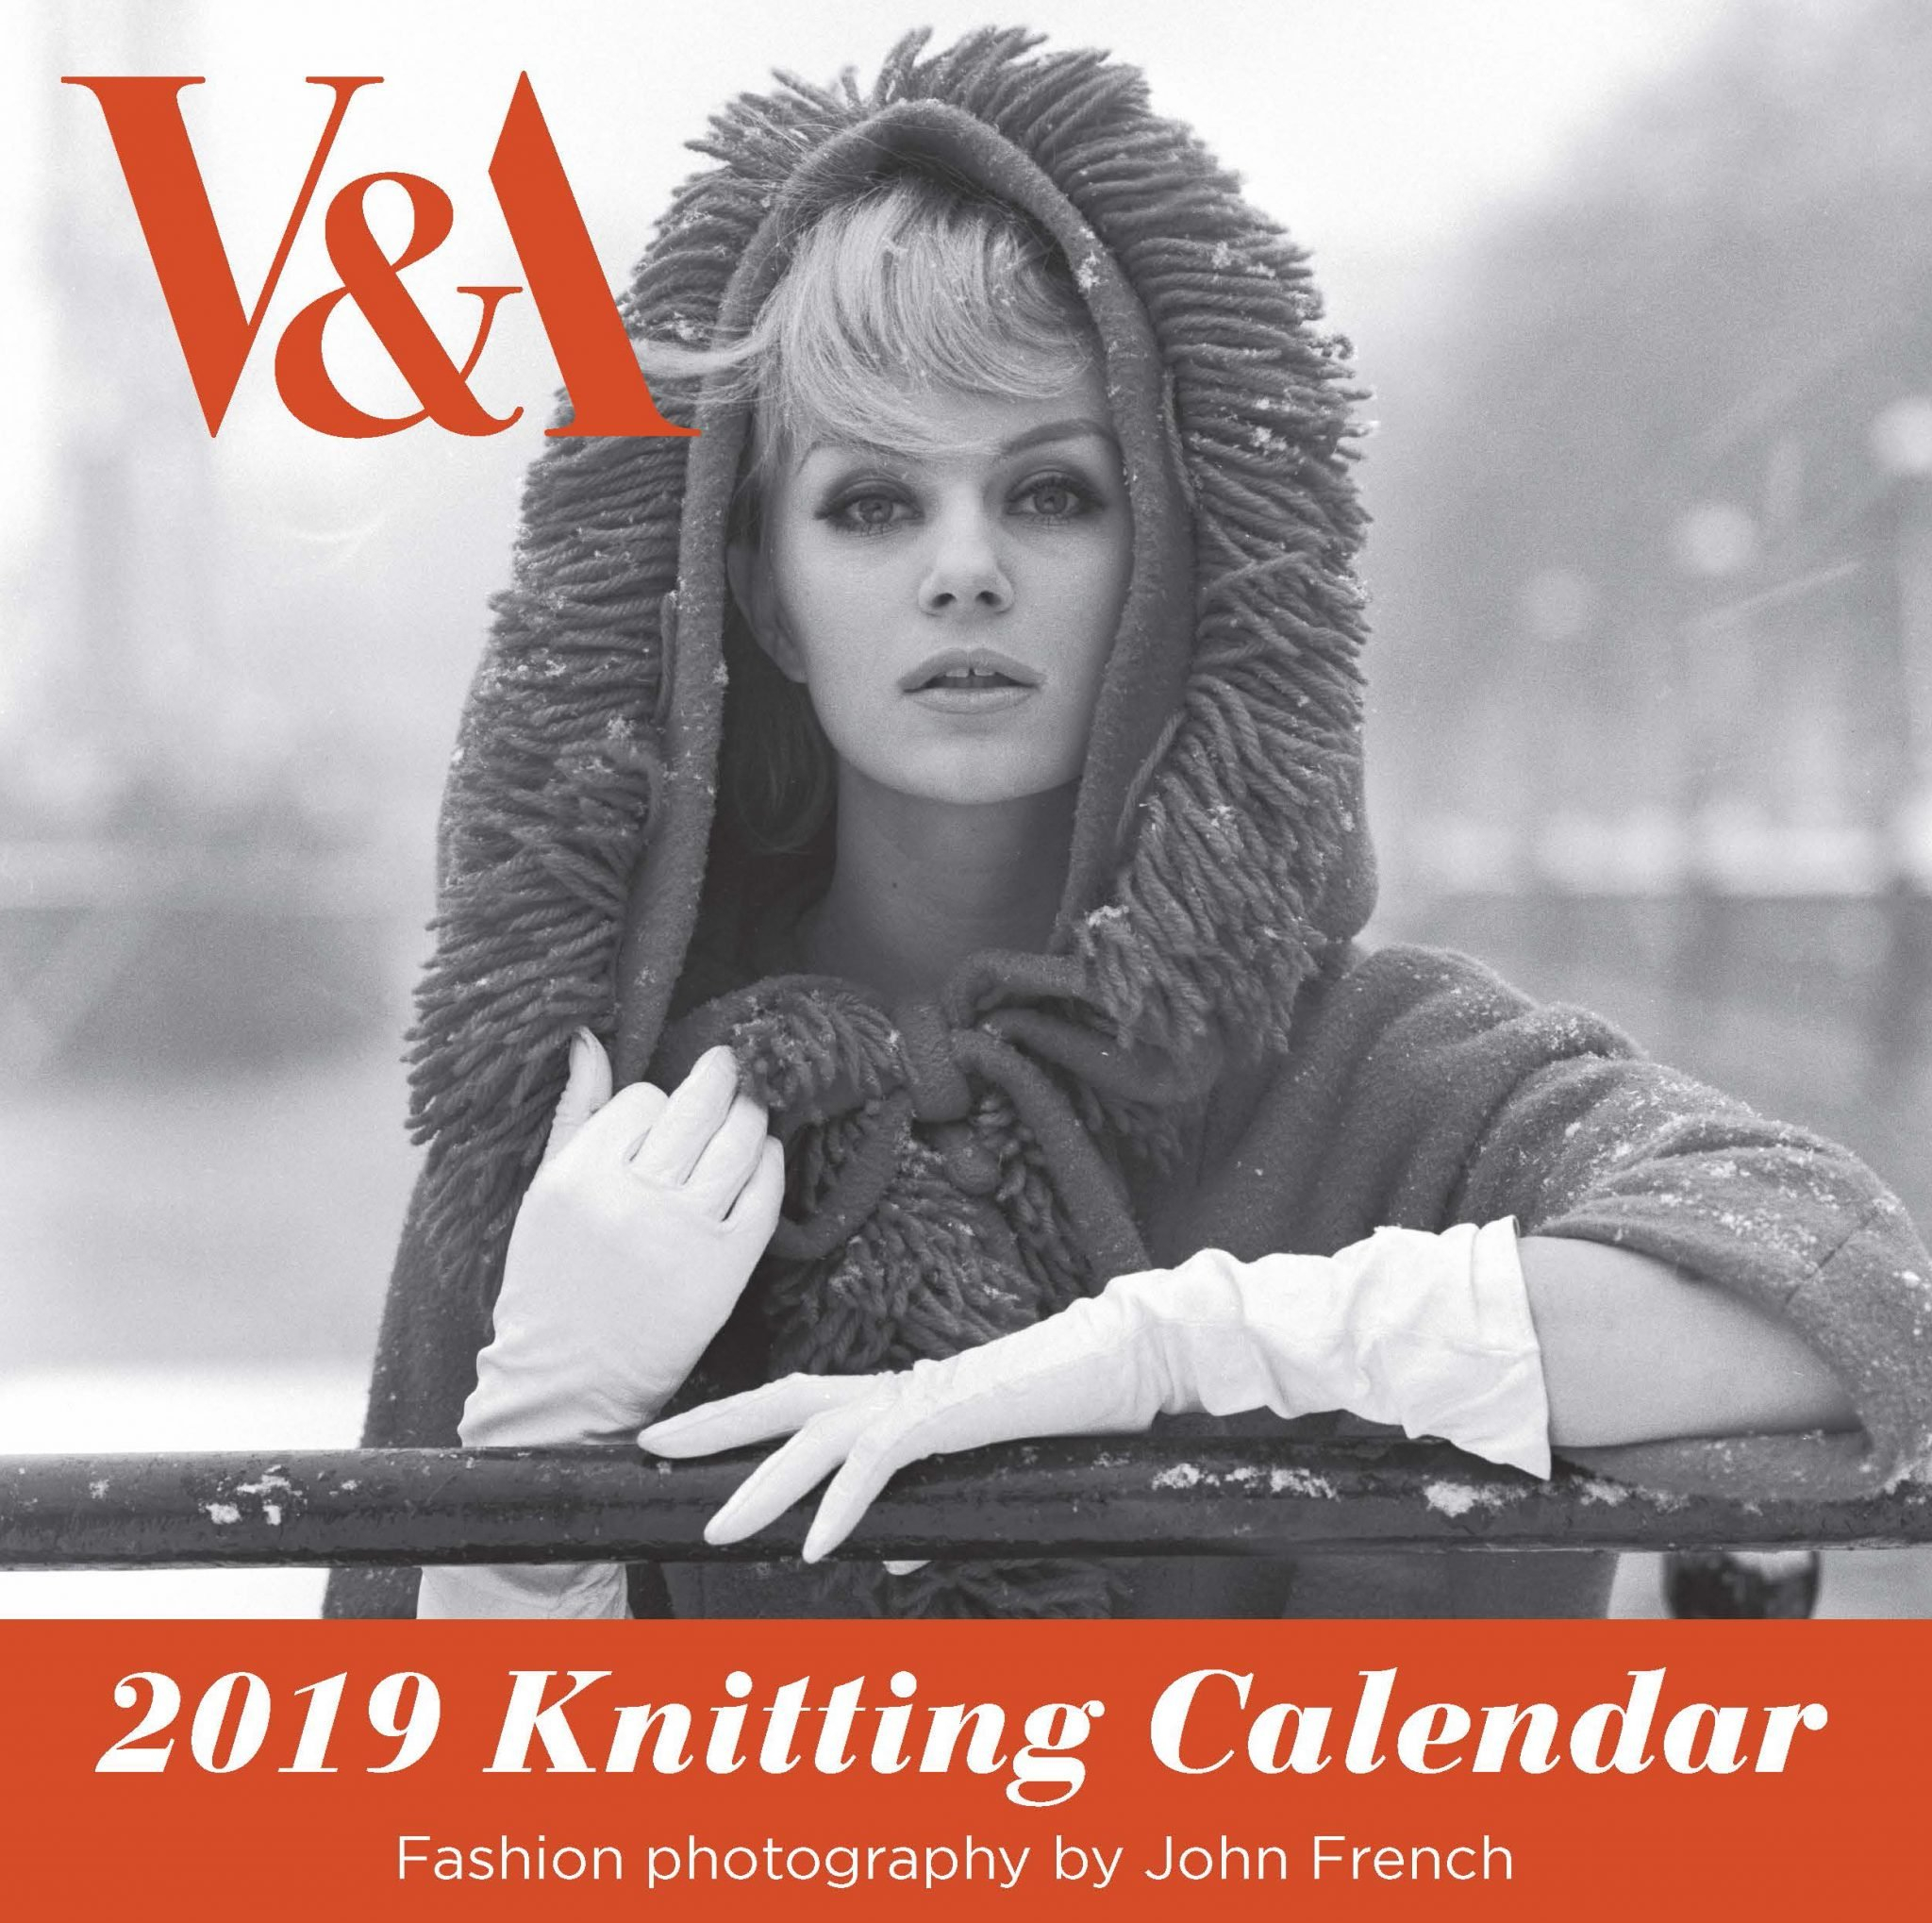 Win Tickets To The V&a – Your Chance To Win Tickets To The V&a Museum V&a Calendar 2019